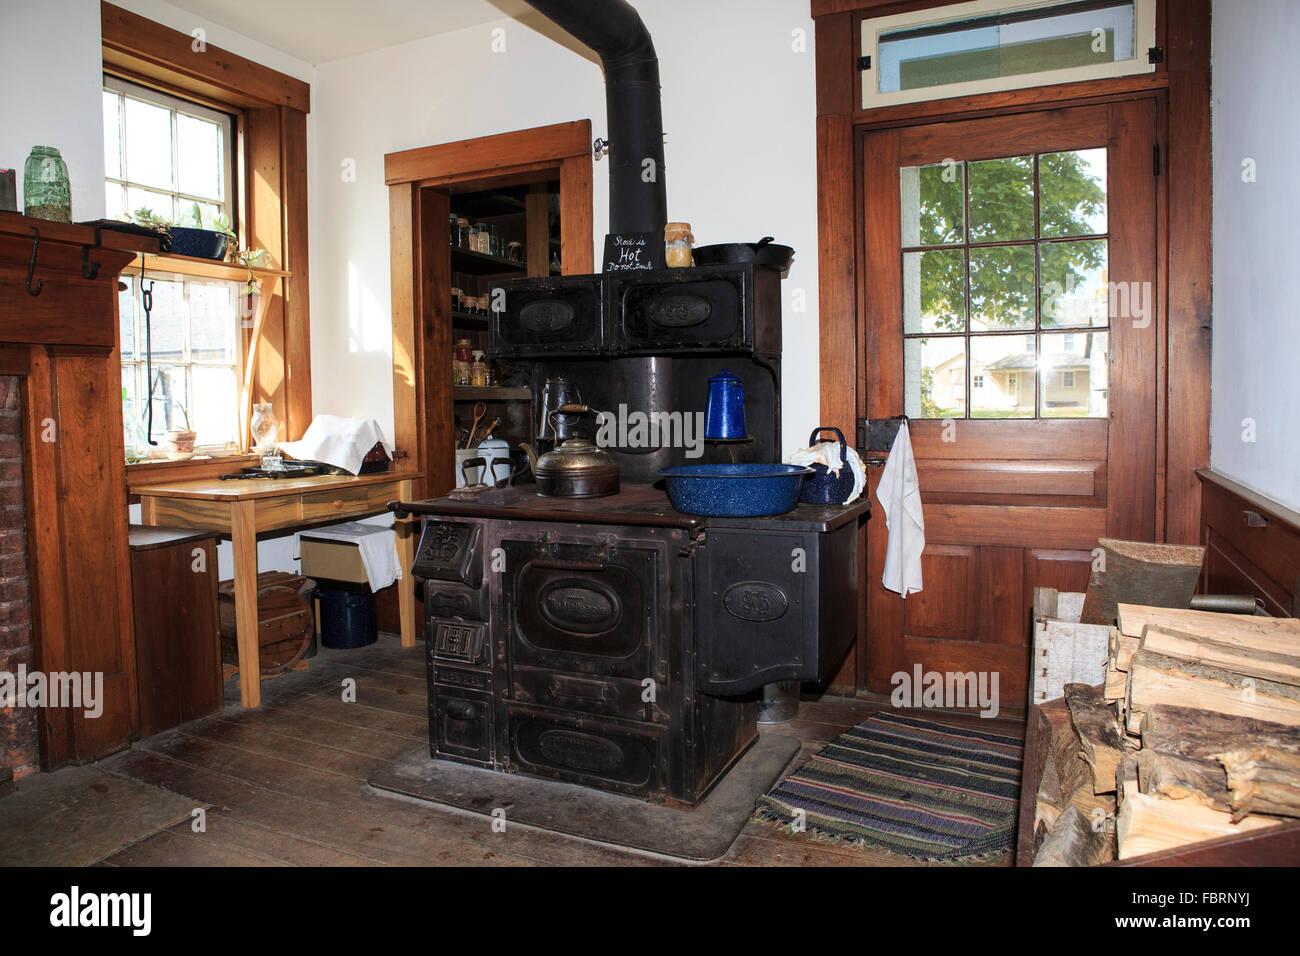 cast iron kitchen stove miele appliances cooking in the of a an old